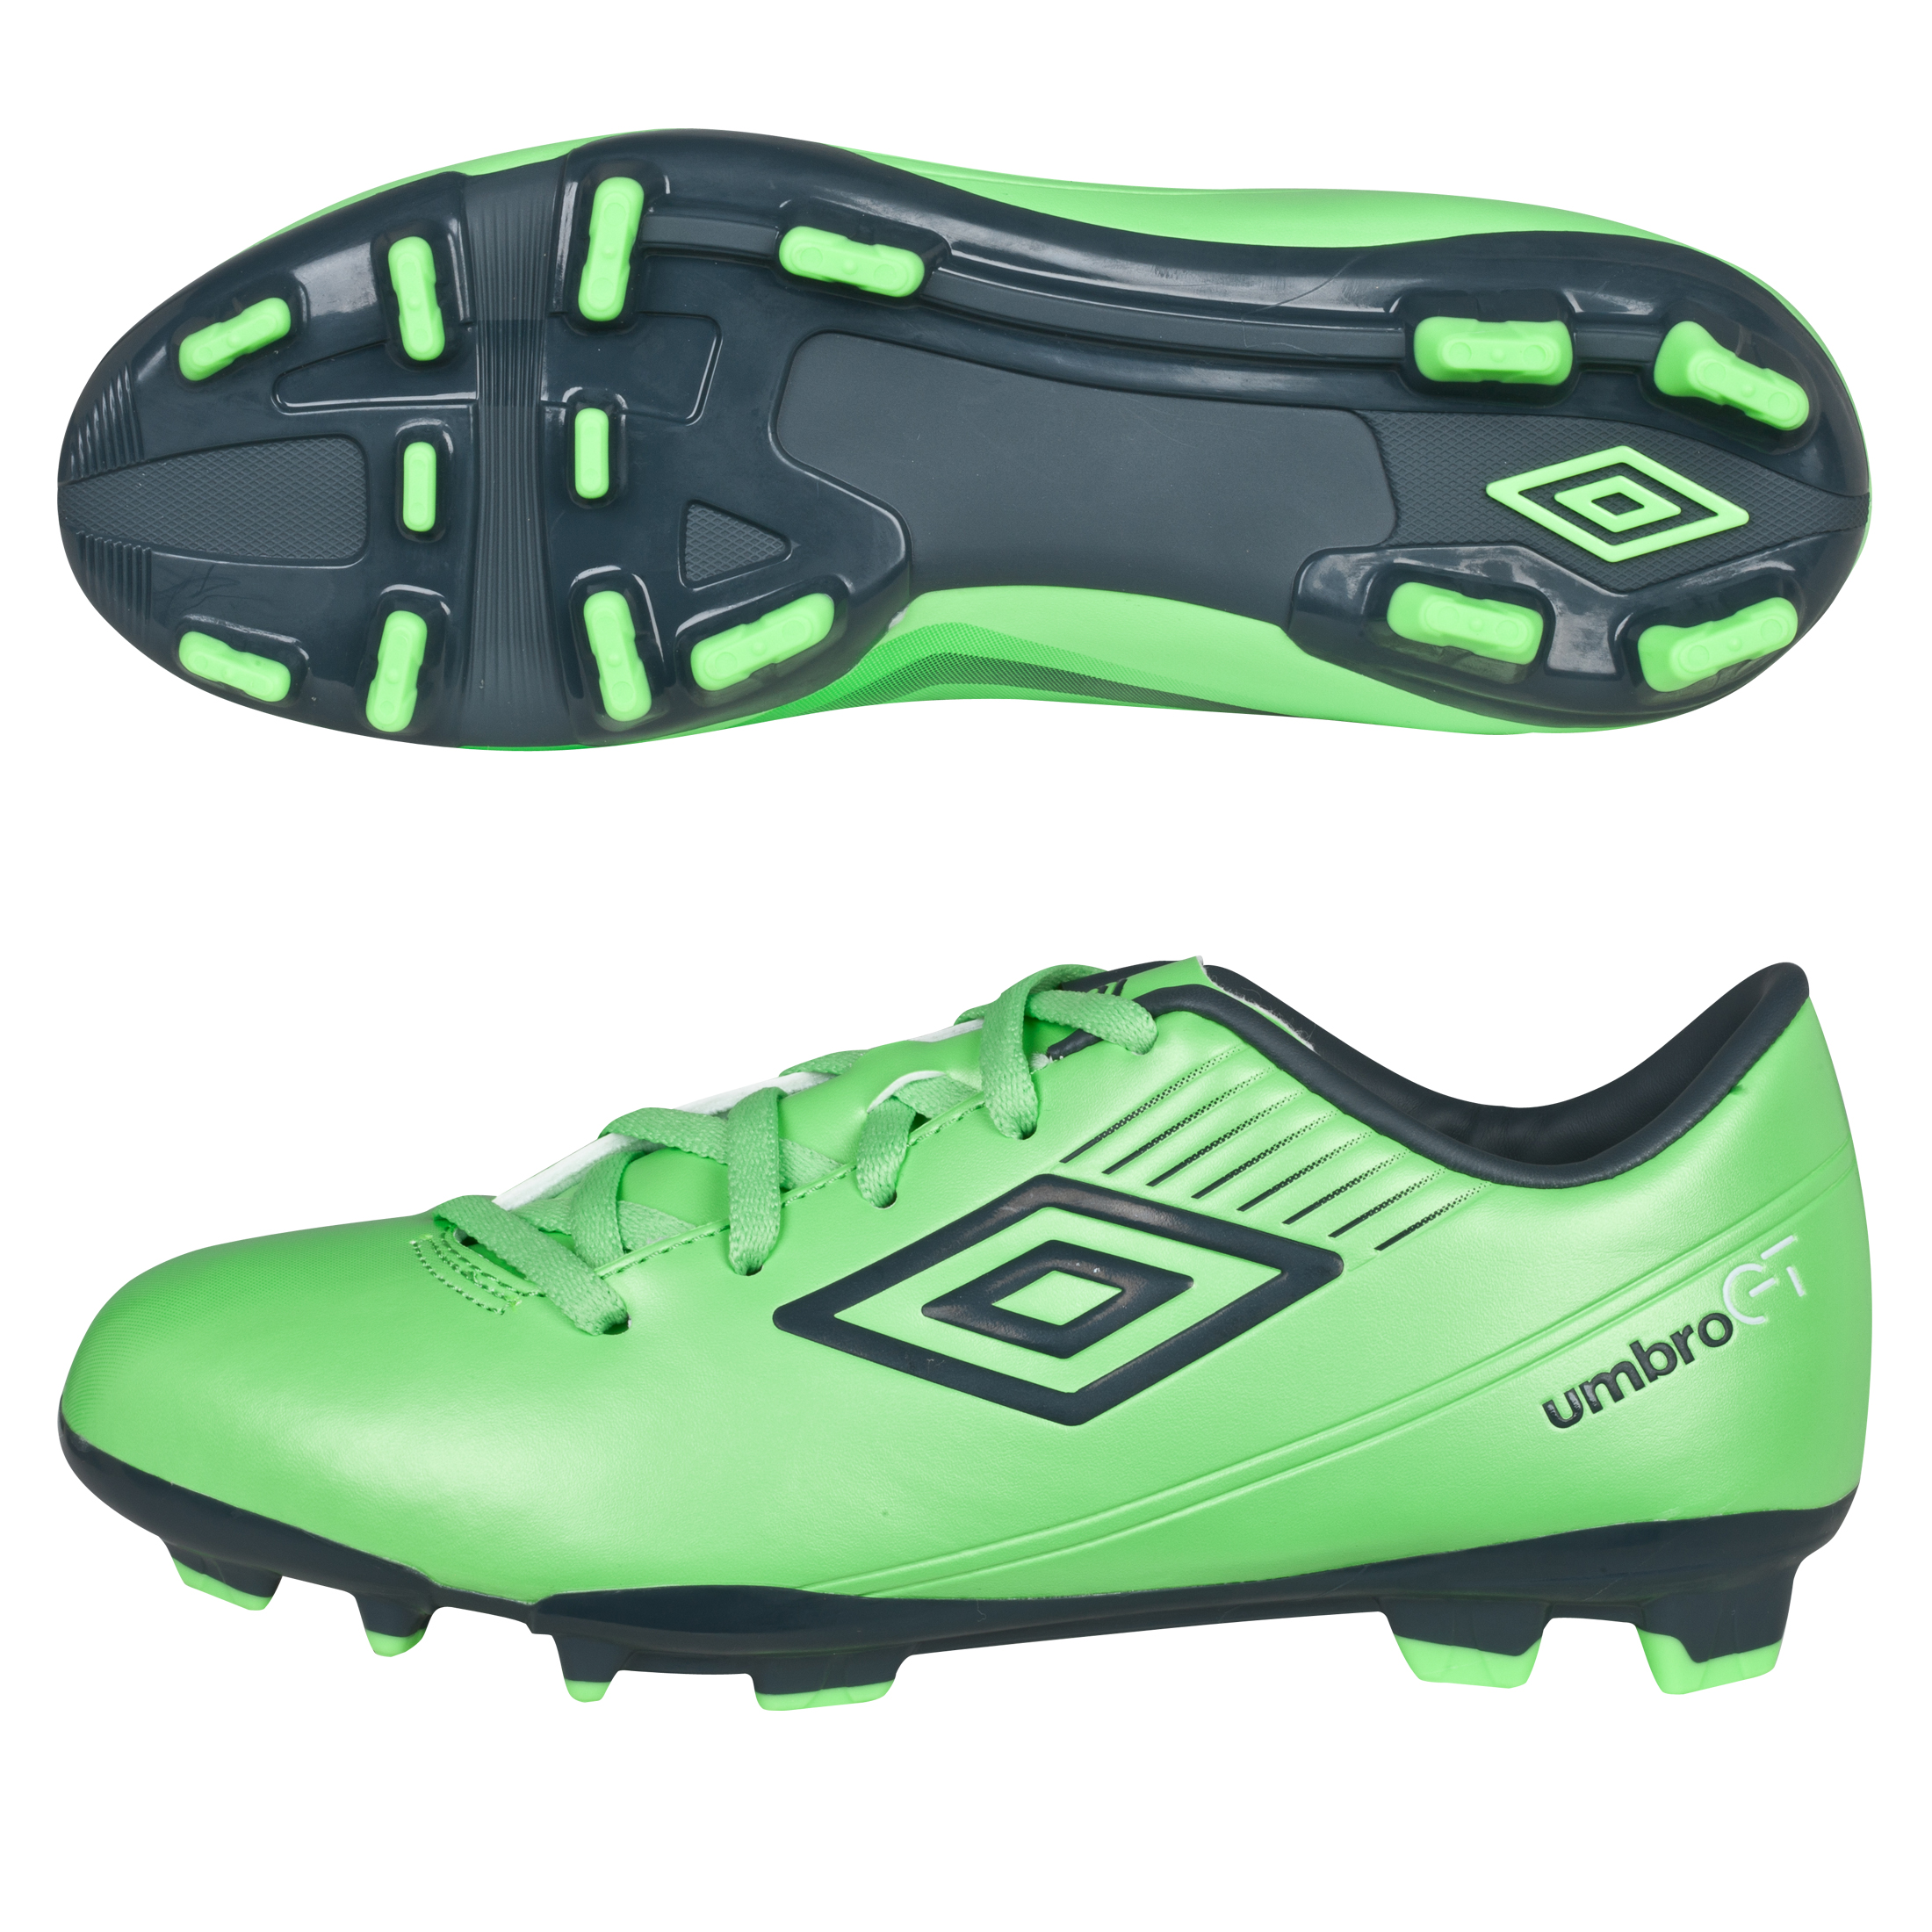 Umbro GT ll Cup Firm Ground Football Boots - Summer Green/Carbon/White - Kids